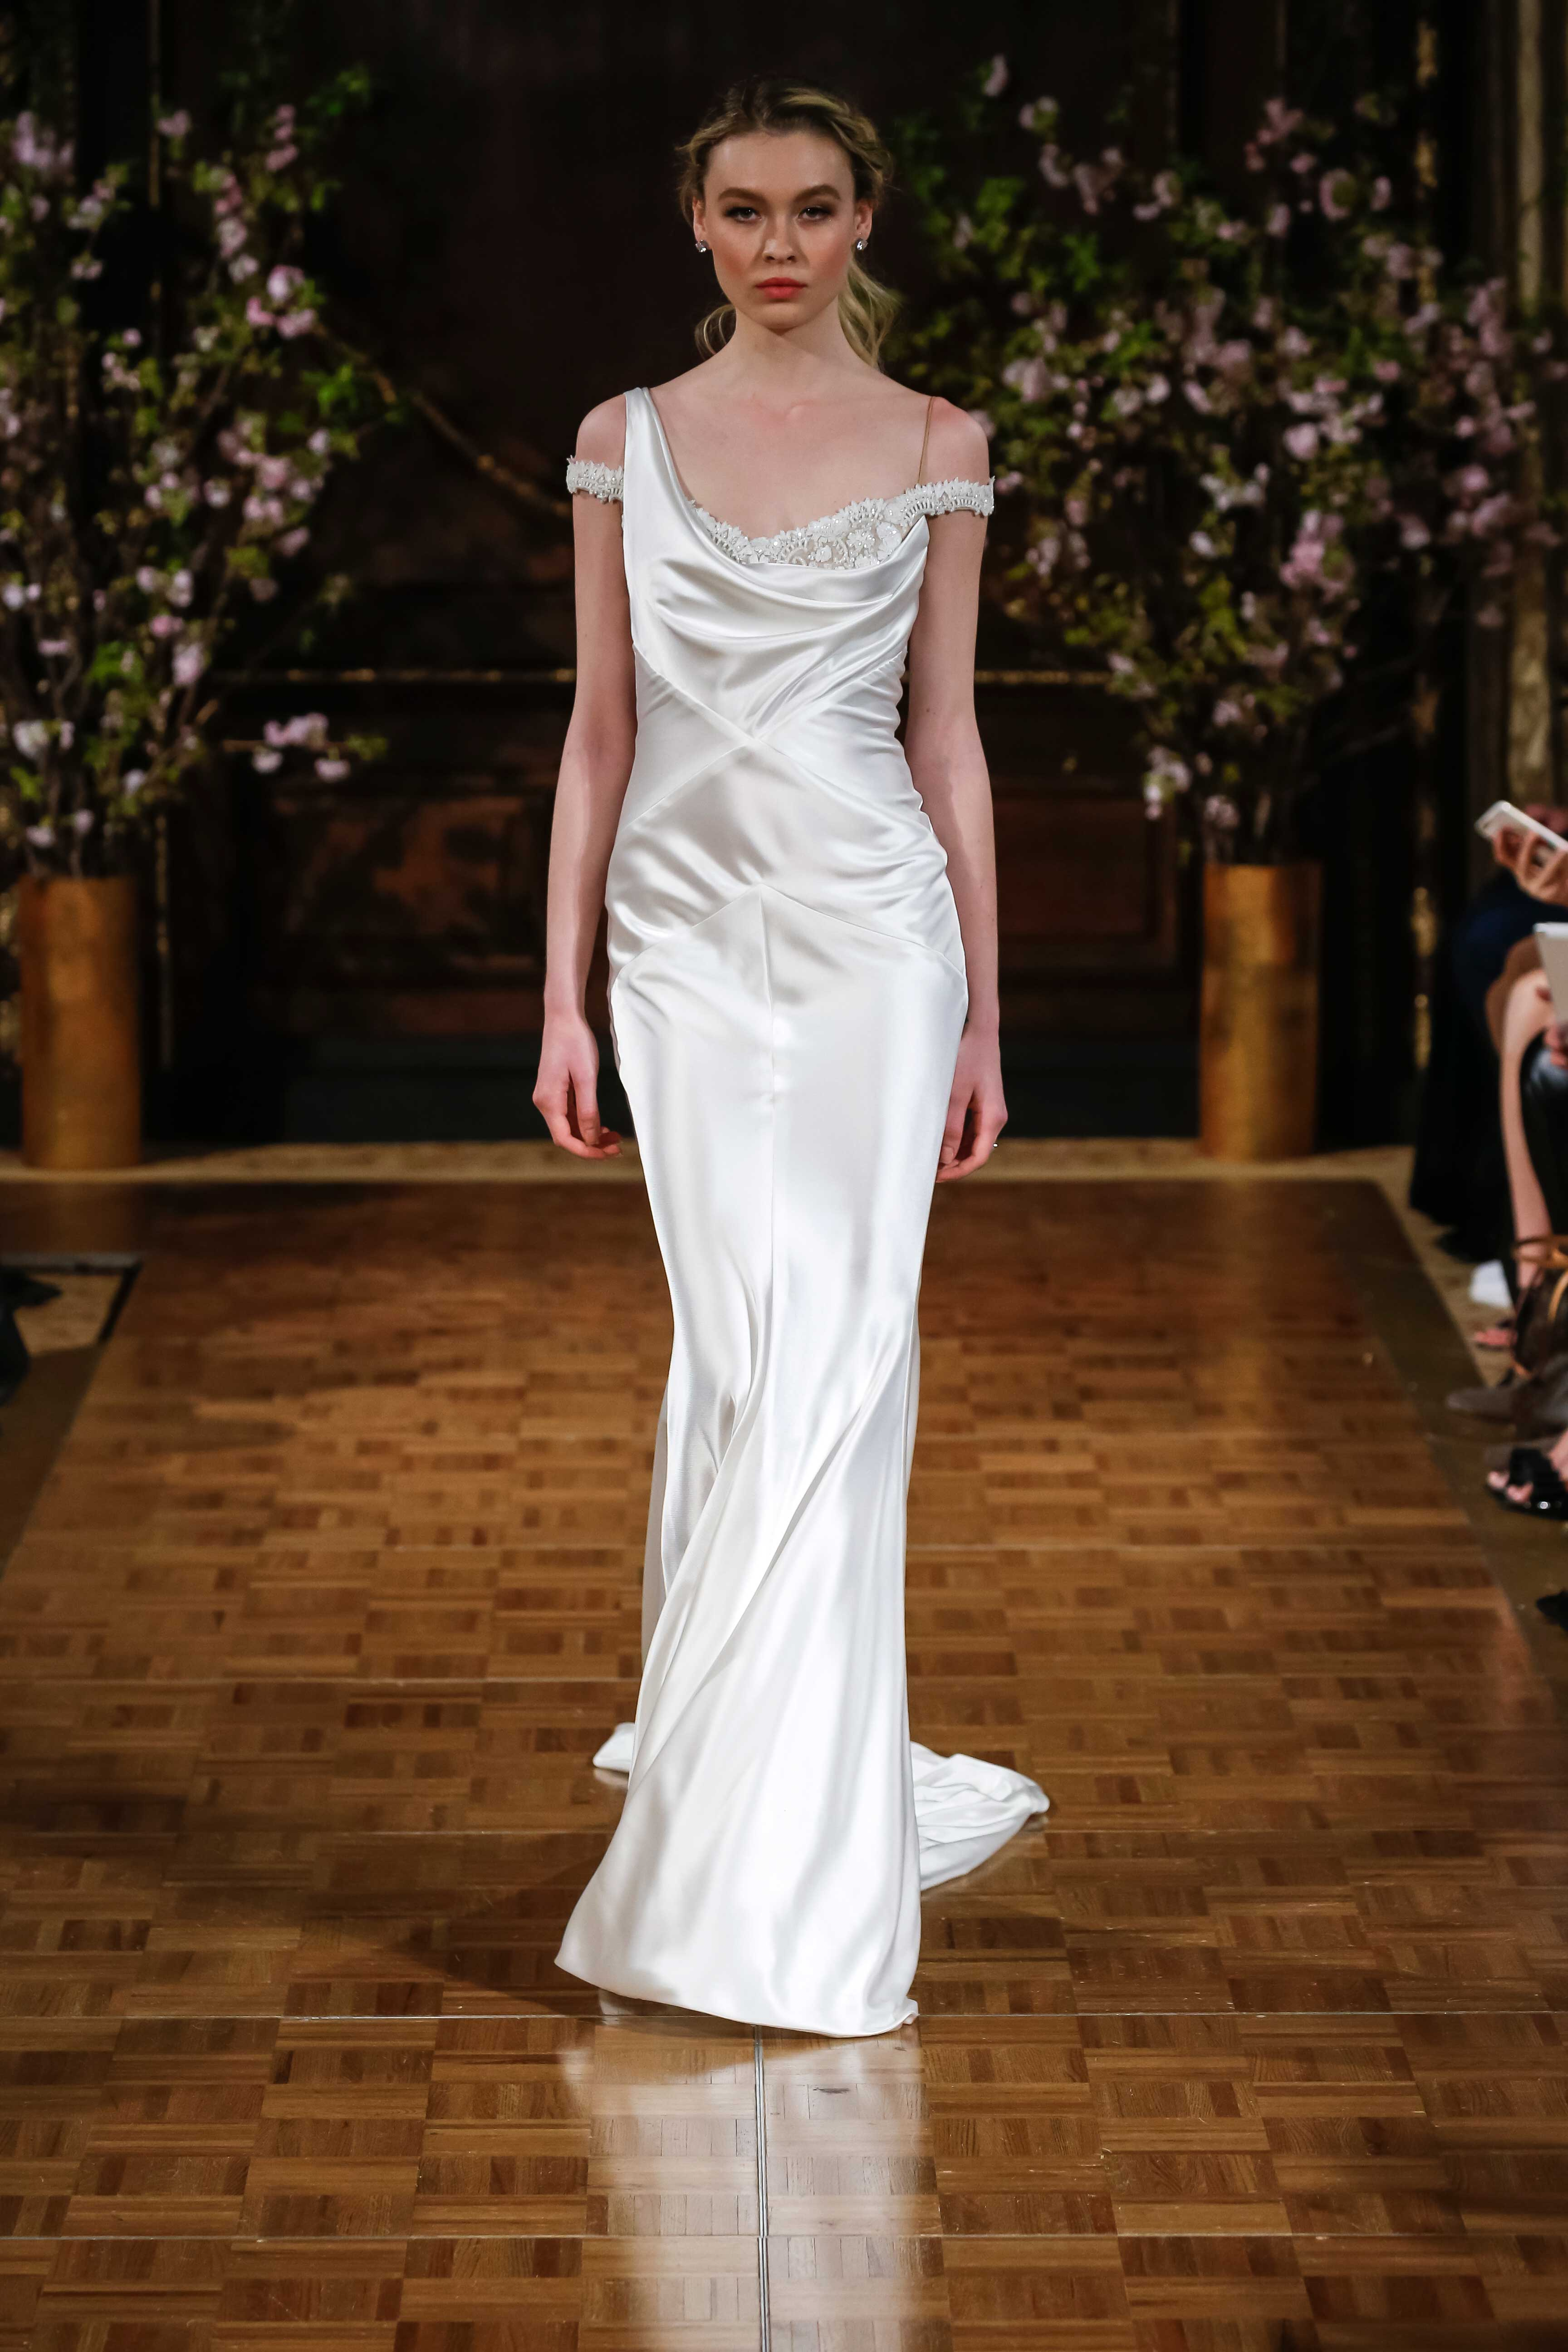 isabelle armstrong one shoulder wedding dress with bling, sofia vergara emmys inspiration